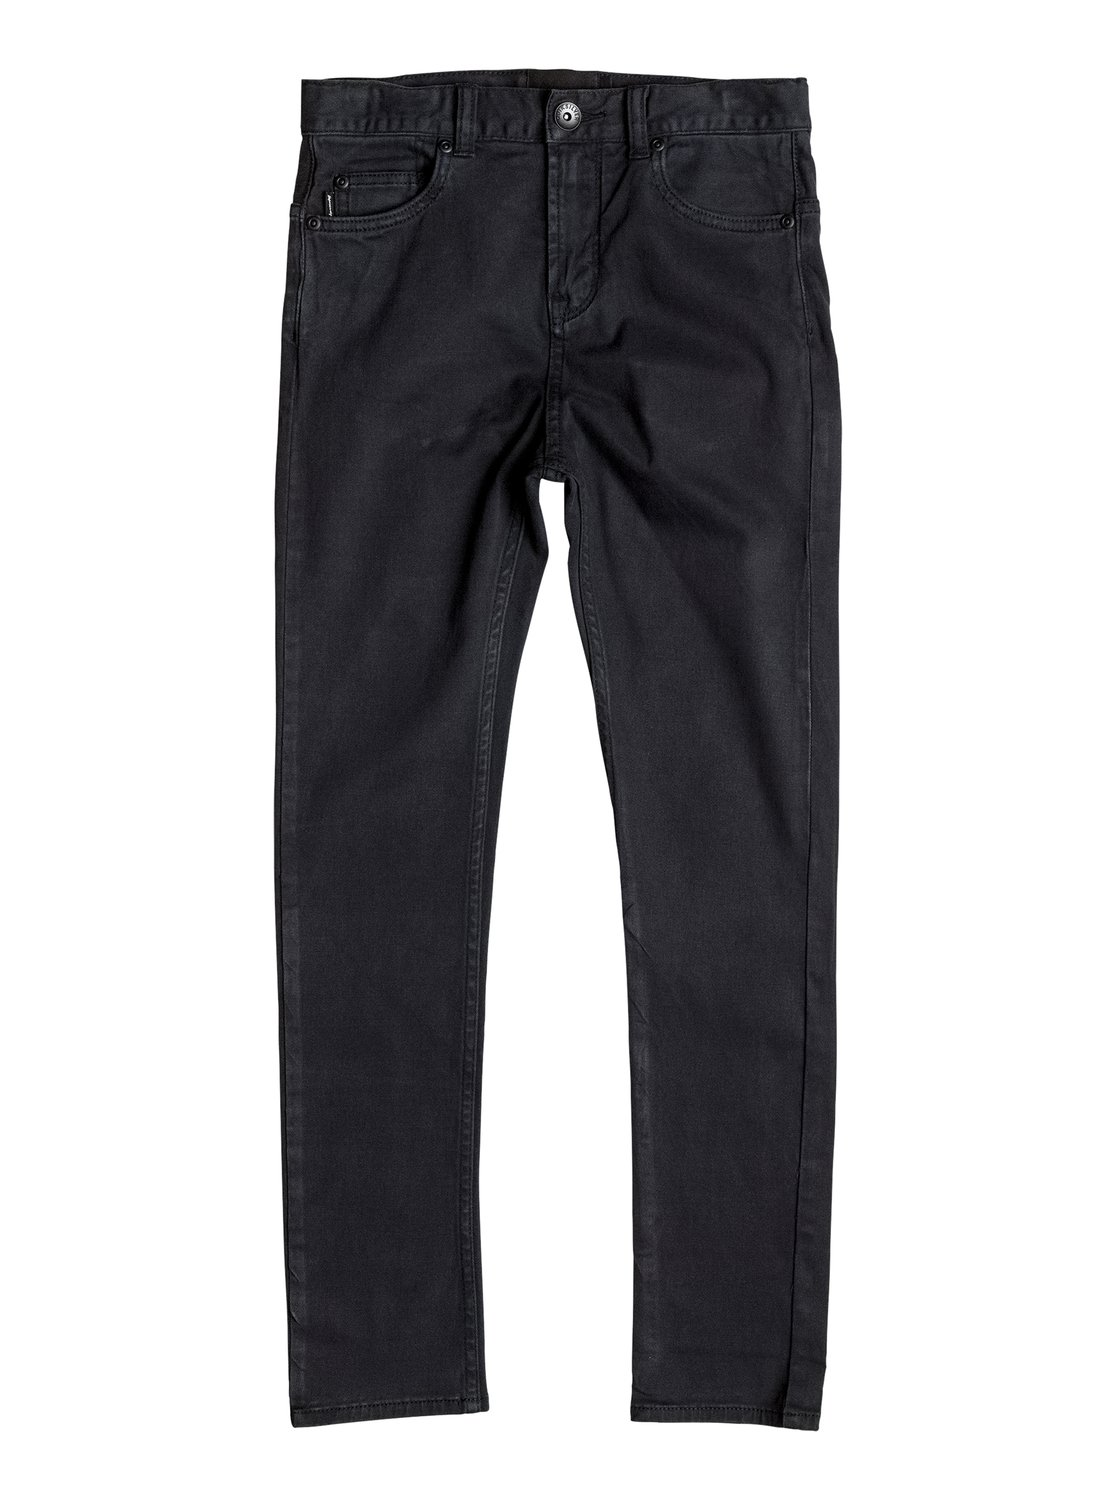 Low Bridge - Tapered Trousers